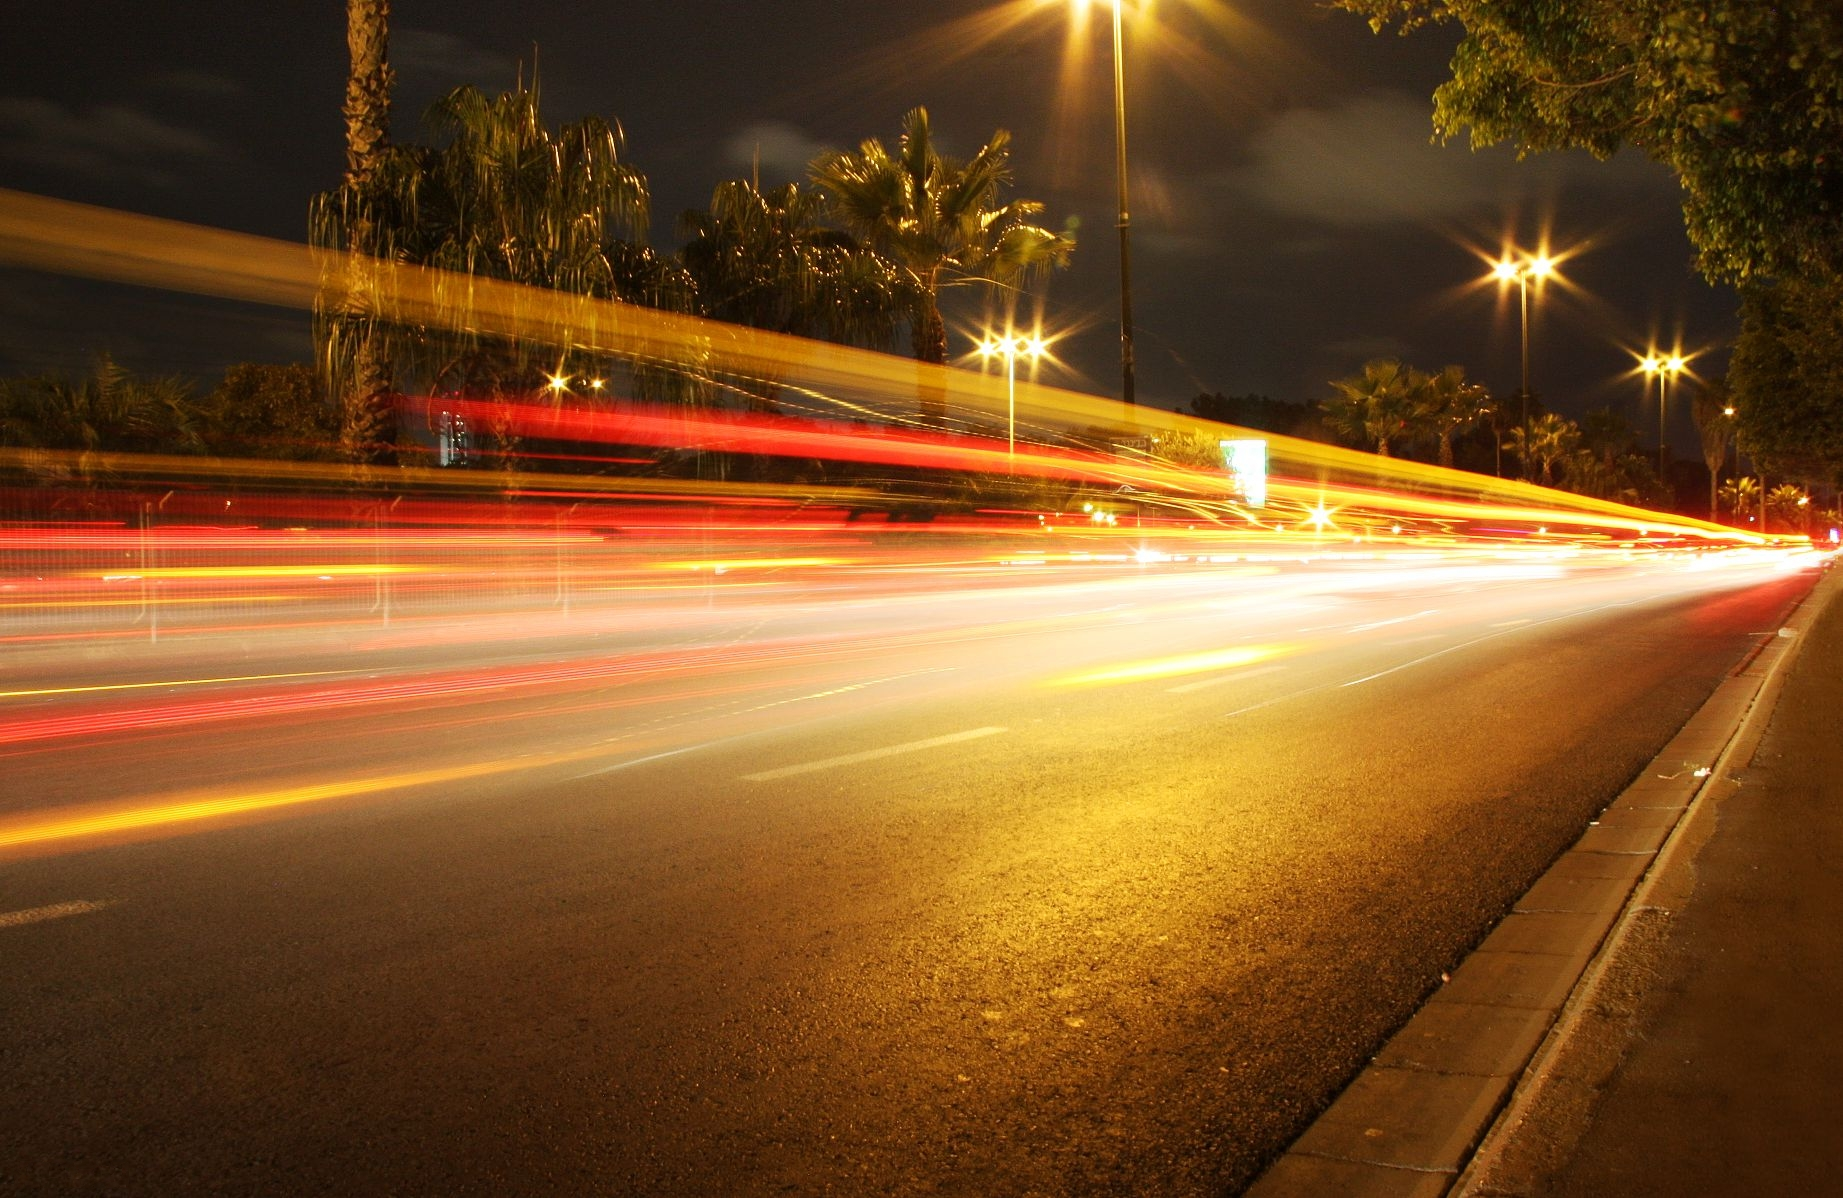 File:Night street lights-other.jpg